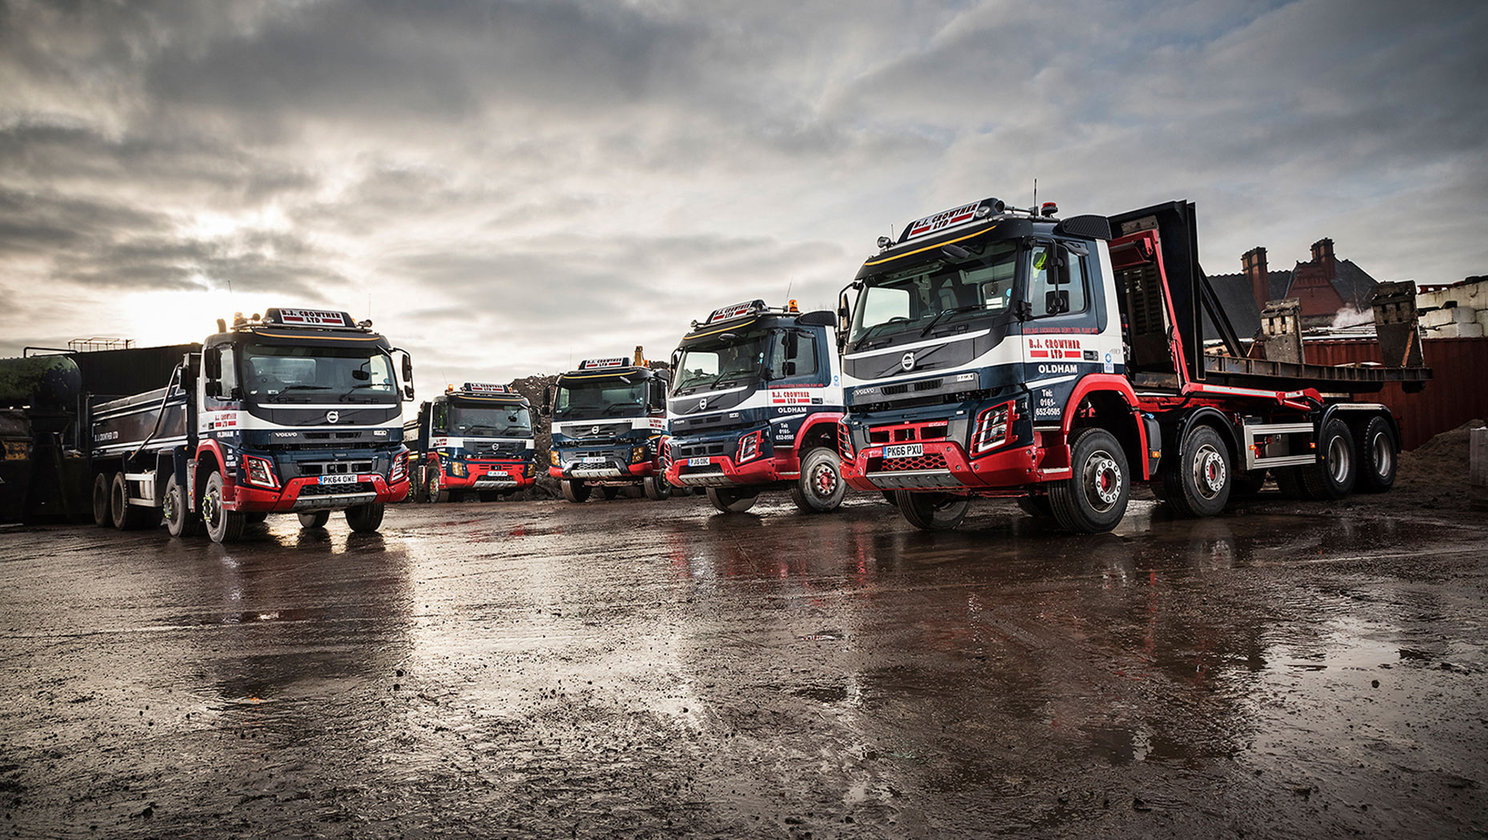 Dynafleet trial is raising efficiencies with B.J. Crowther's Volvo tipper fleet